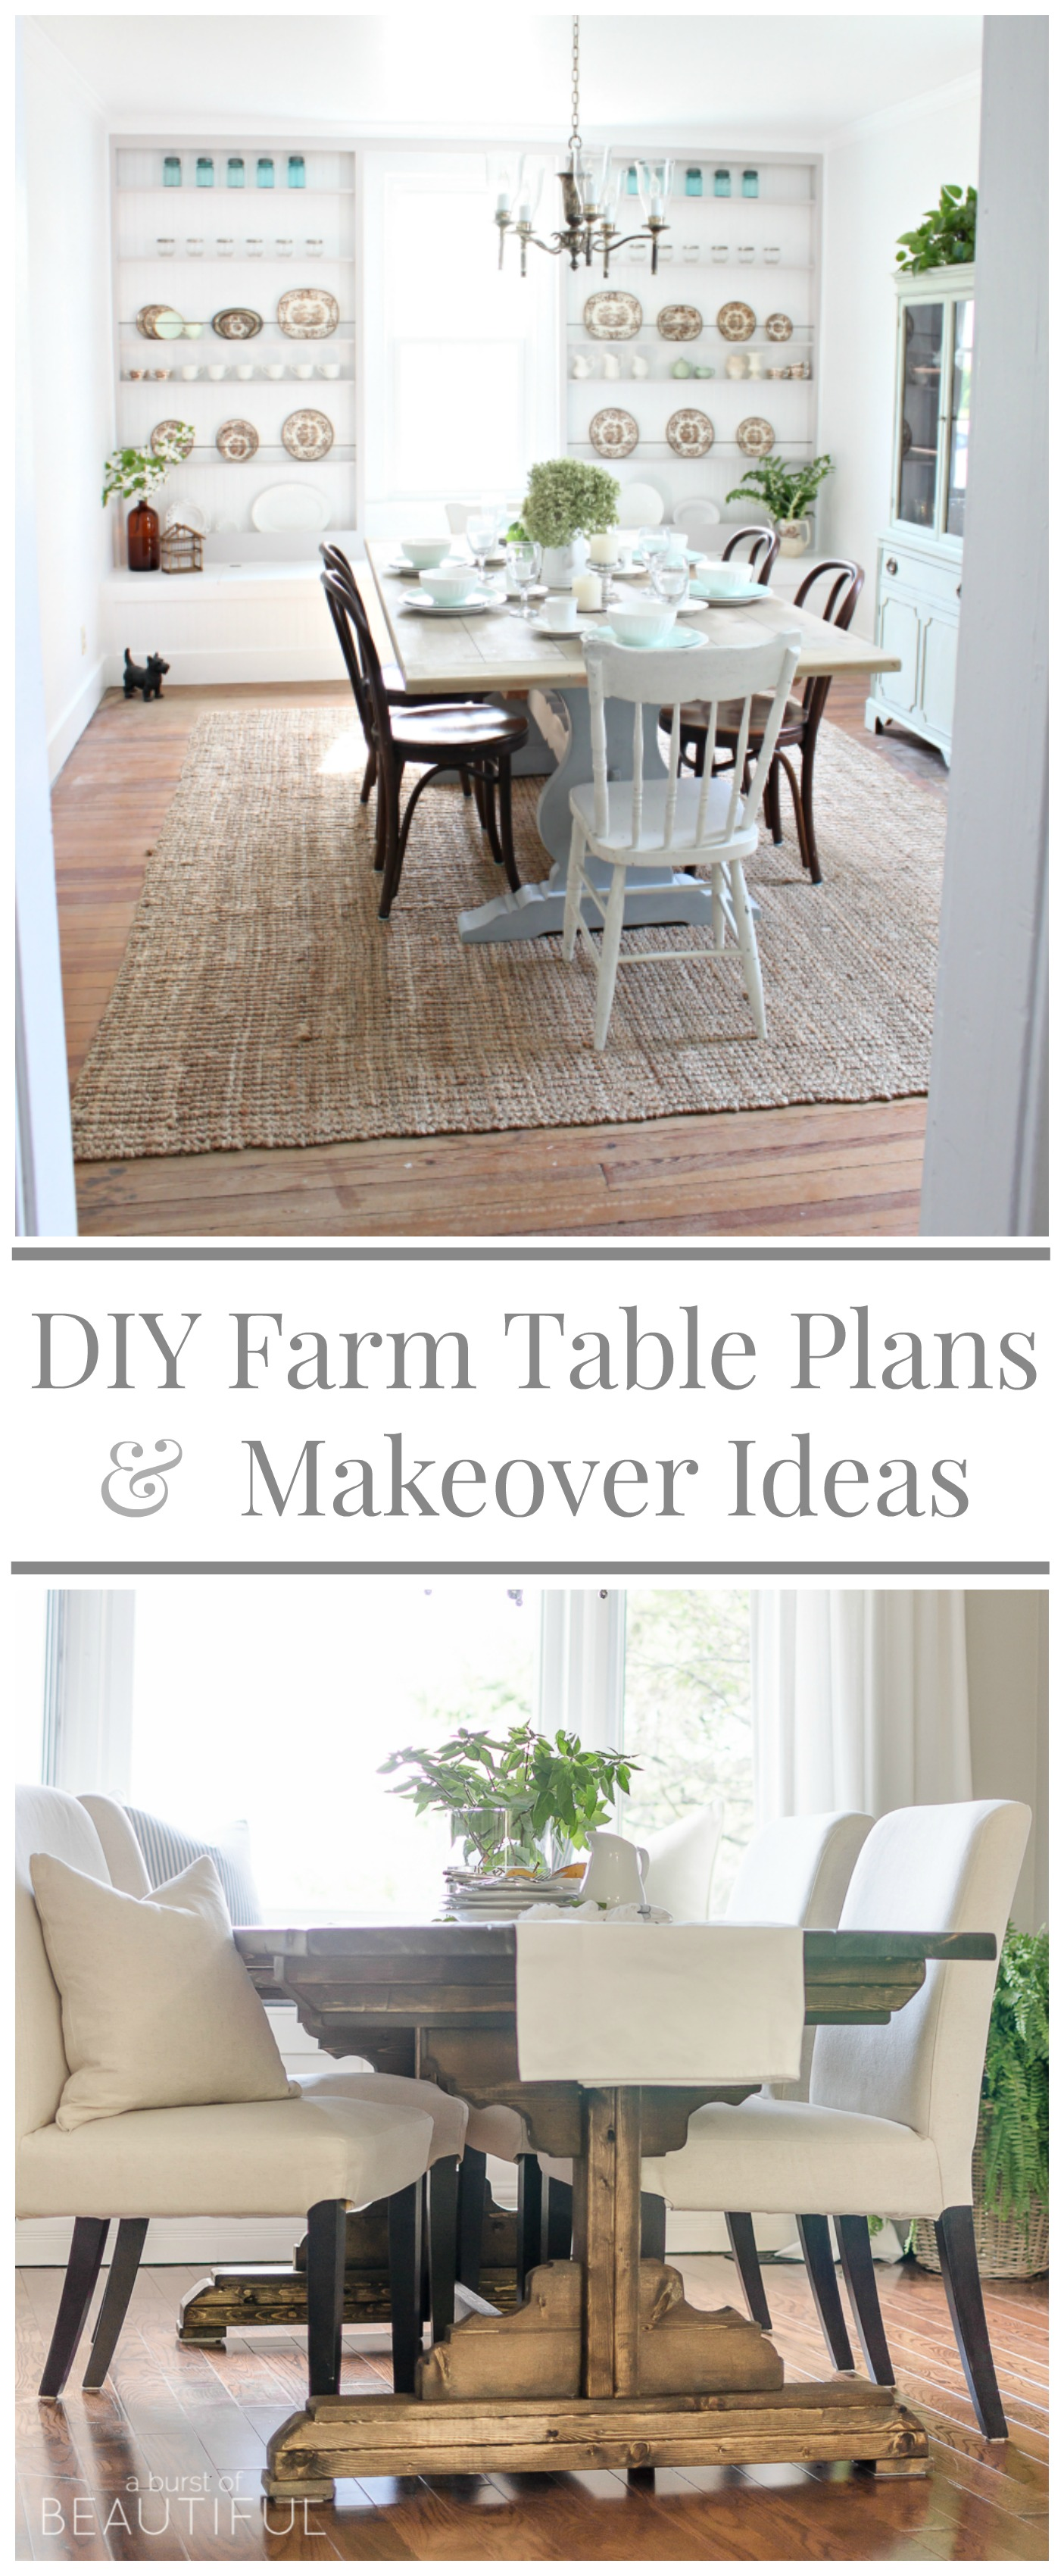 DIY Farm Table Build Plans and Makeover Ideas